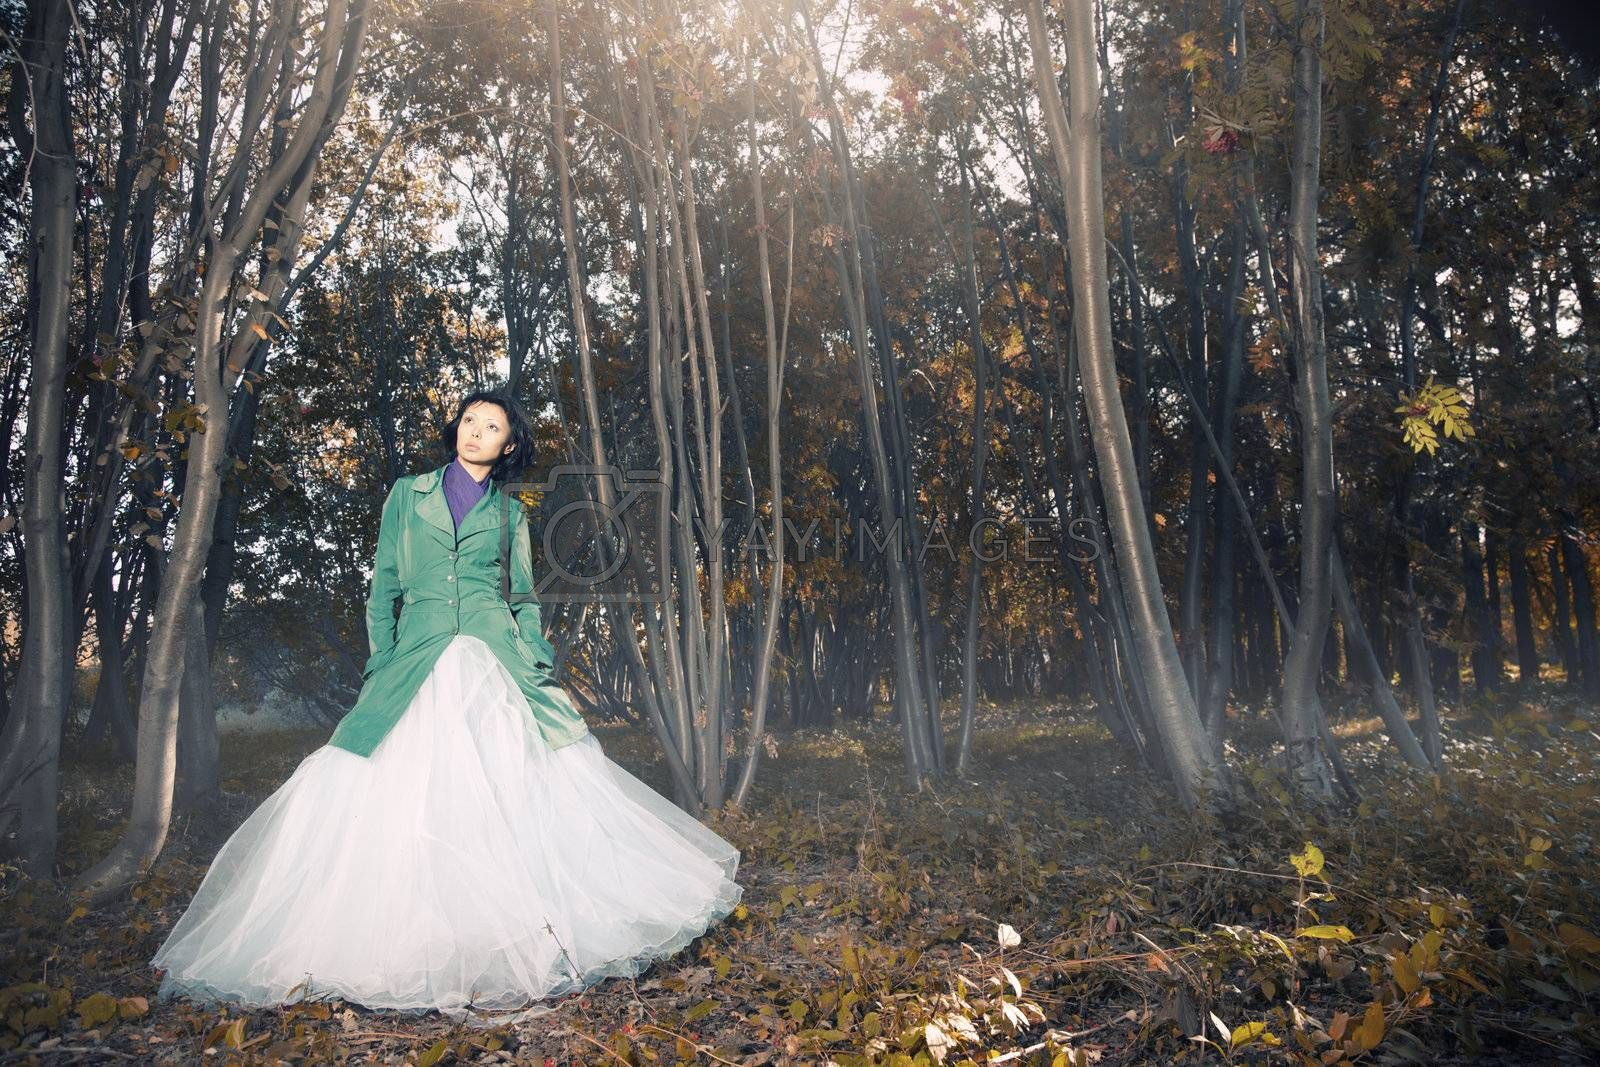 Lady in the wedding dress standing in the autumn forest with fog and red leaves